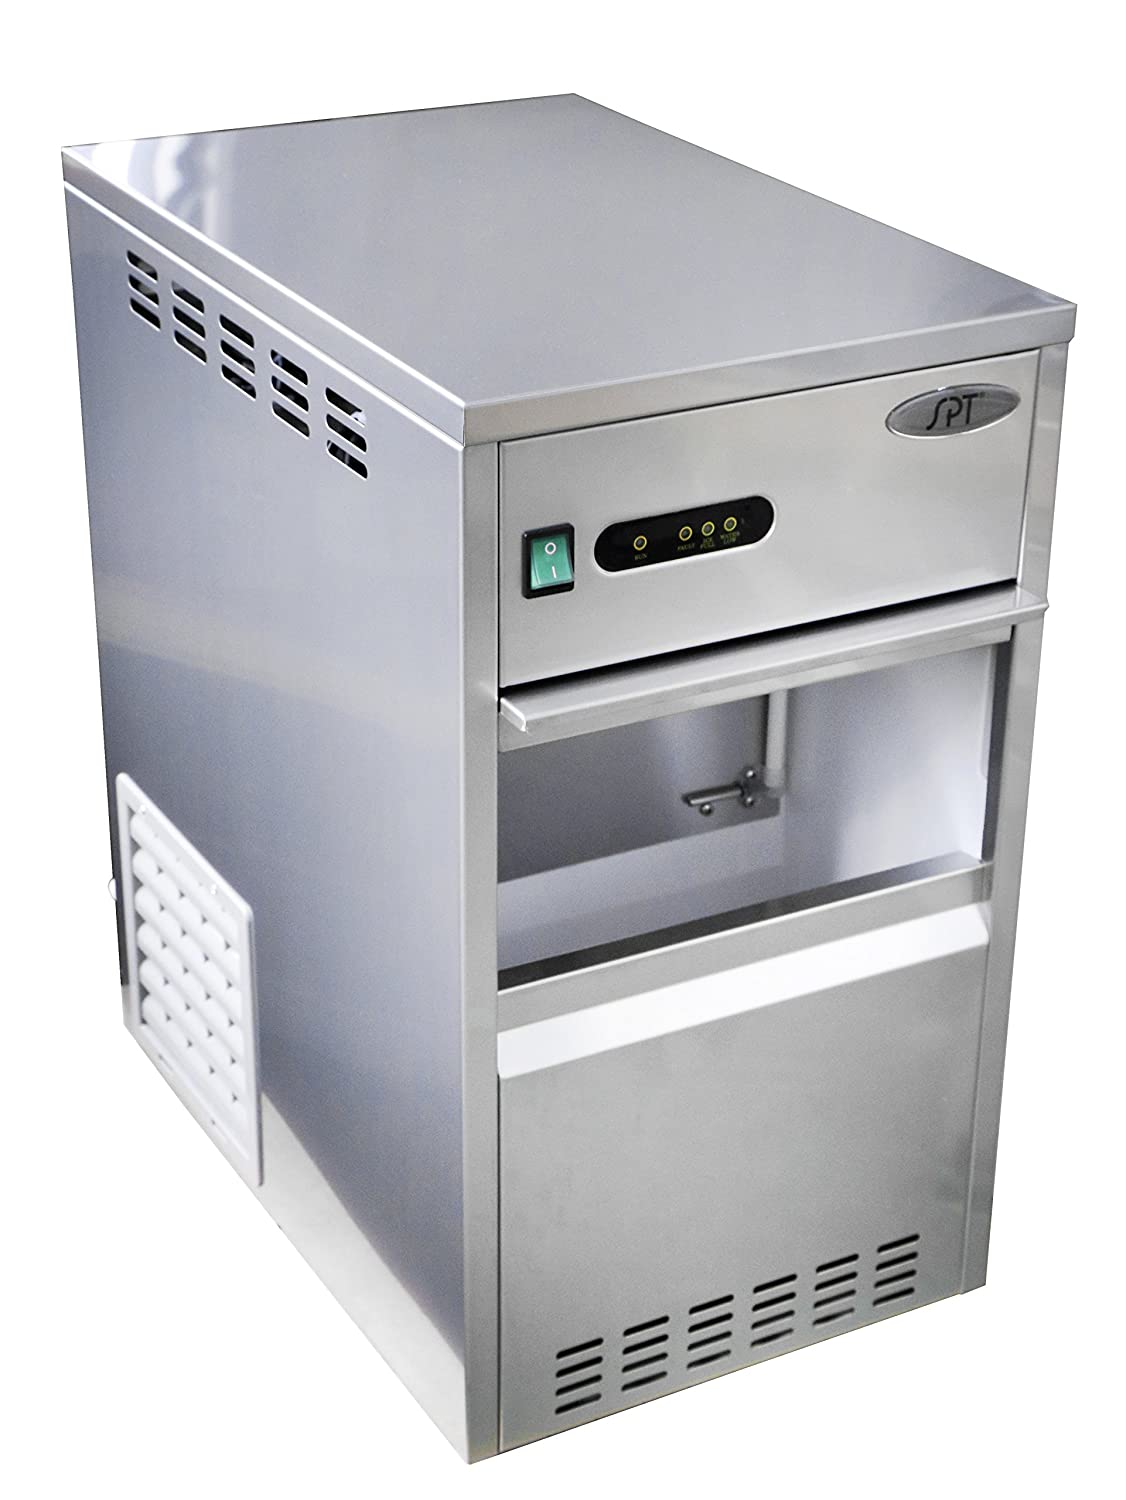 SPT SZB-40 Automatic Flake Ice Maker - 88-lb, Stainless Steel